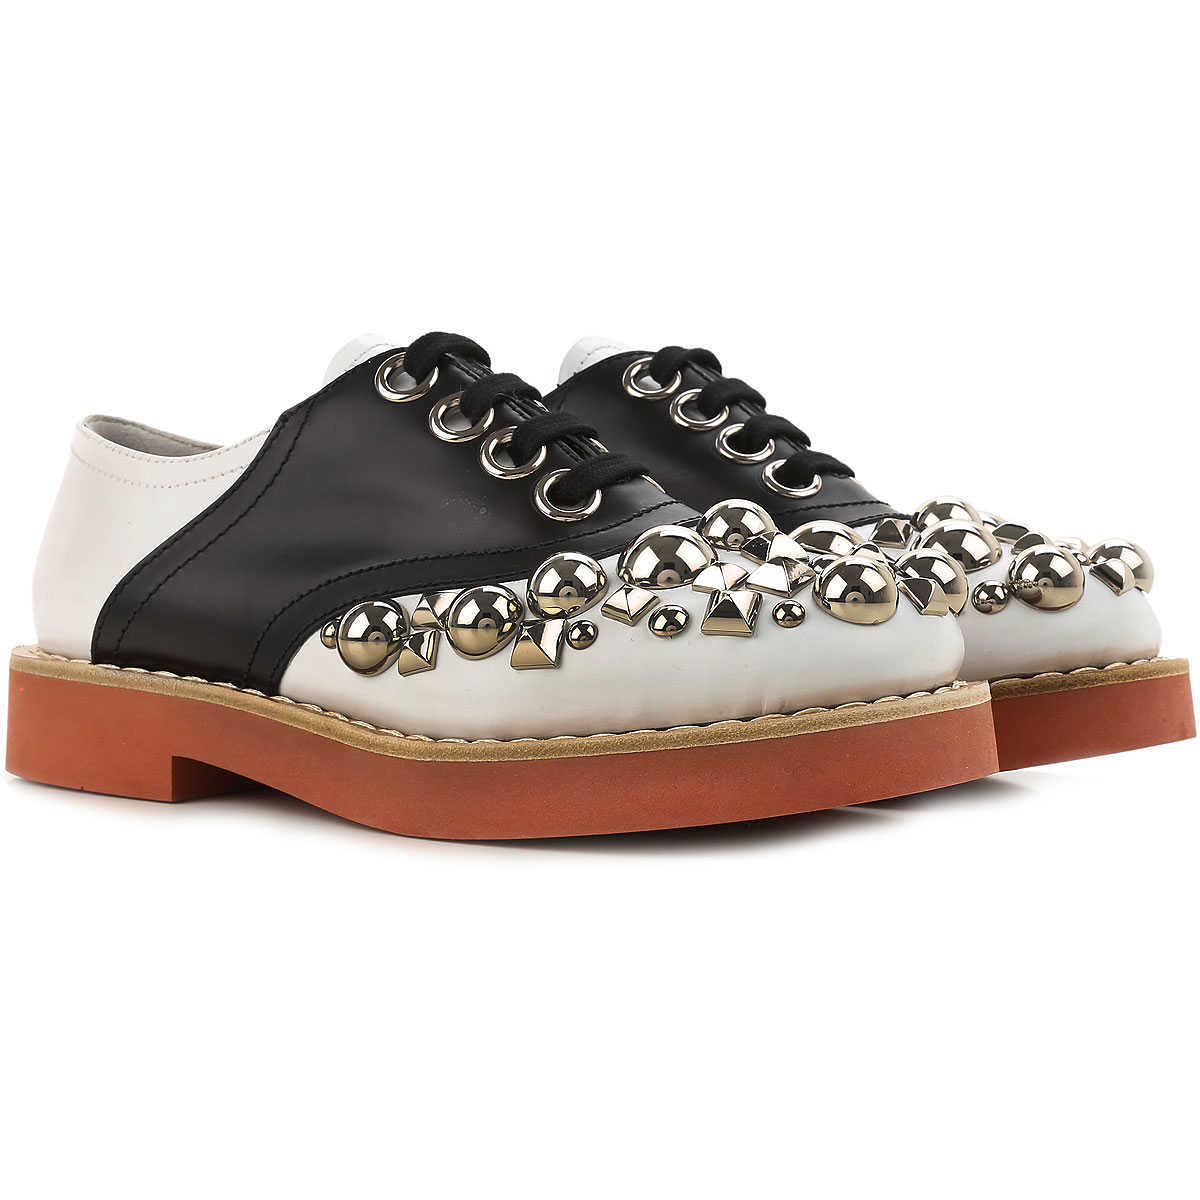 Miu Miu Brogues Oxford Shoes On Sale in Outlet White UK - GOOFASH